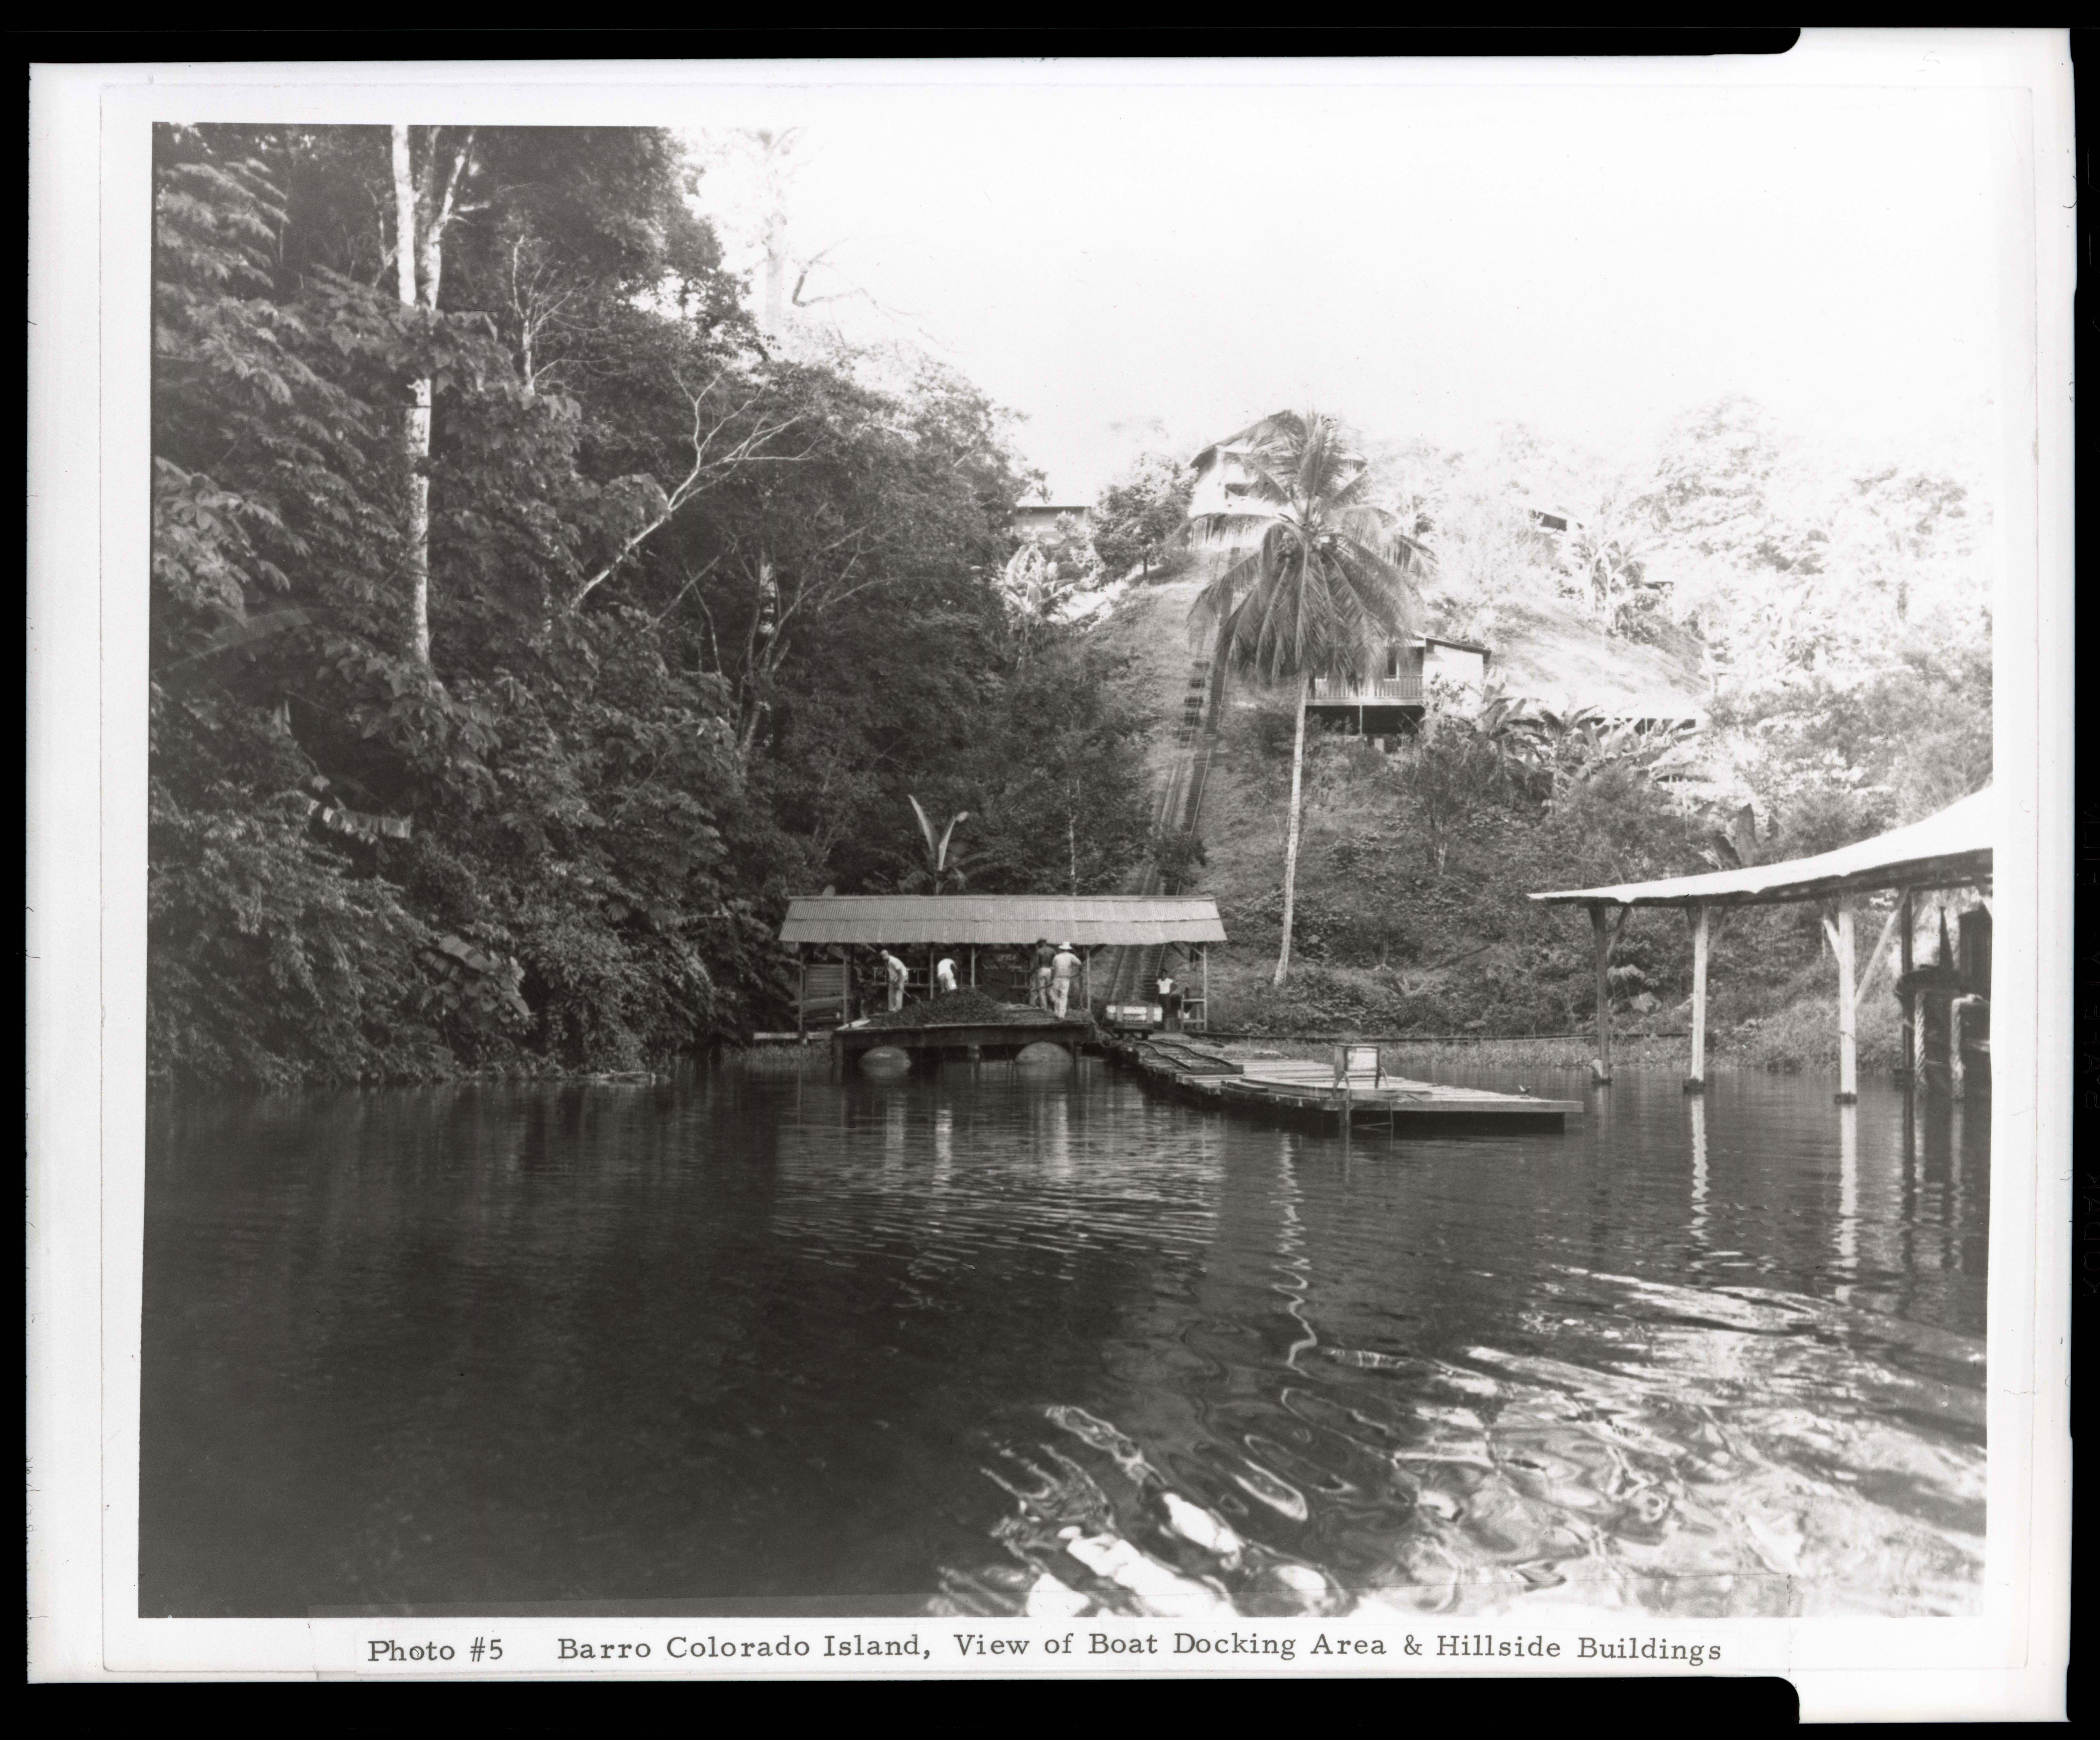 Barro Colorado Island, Smithsonian Tropical Research Institute, Panama